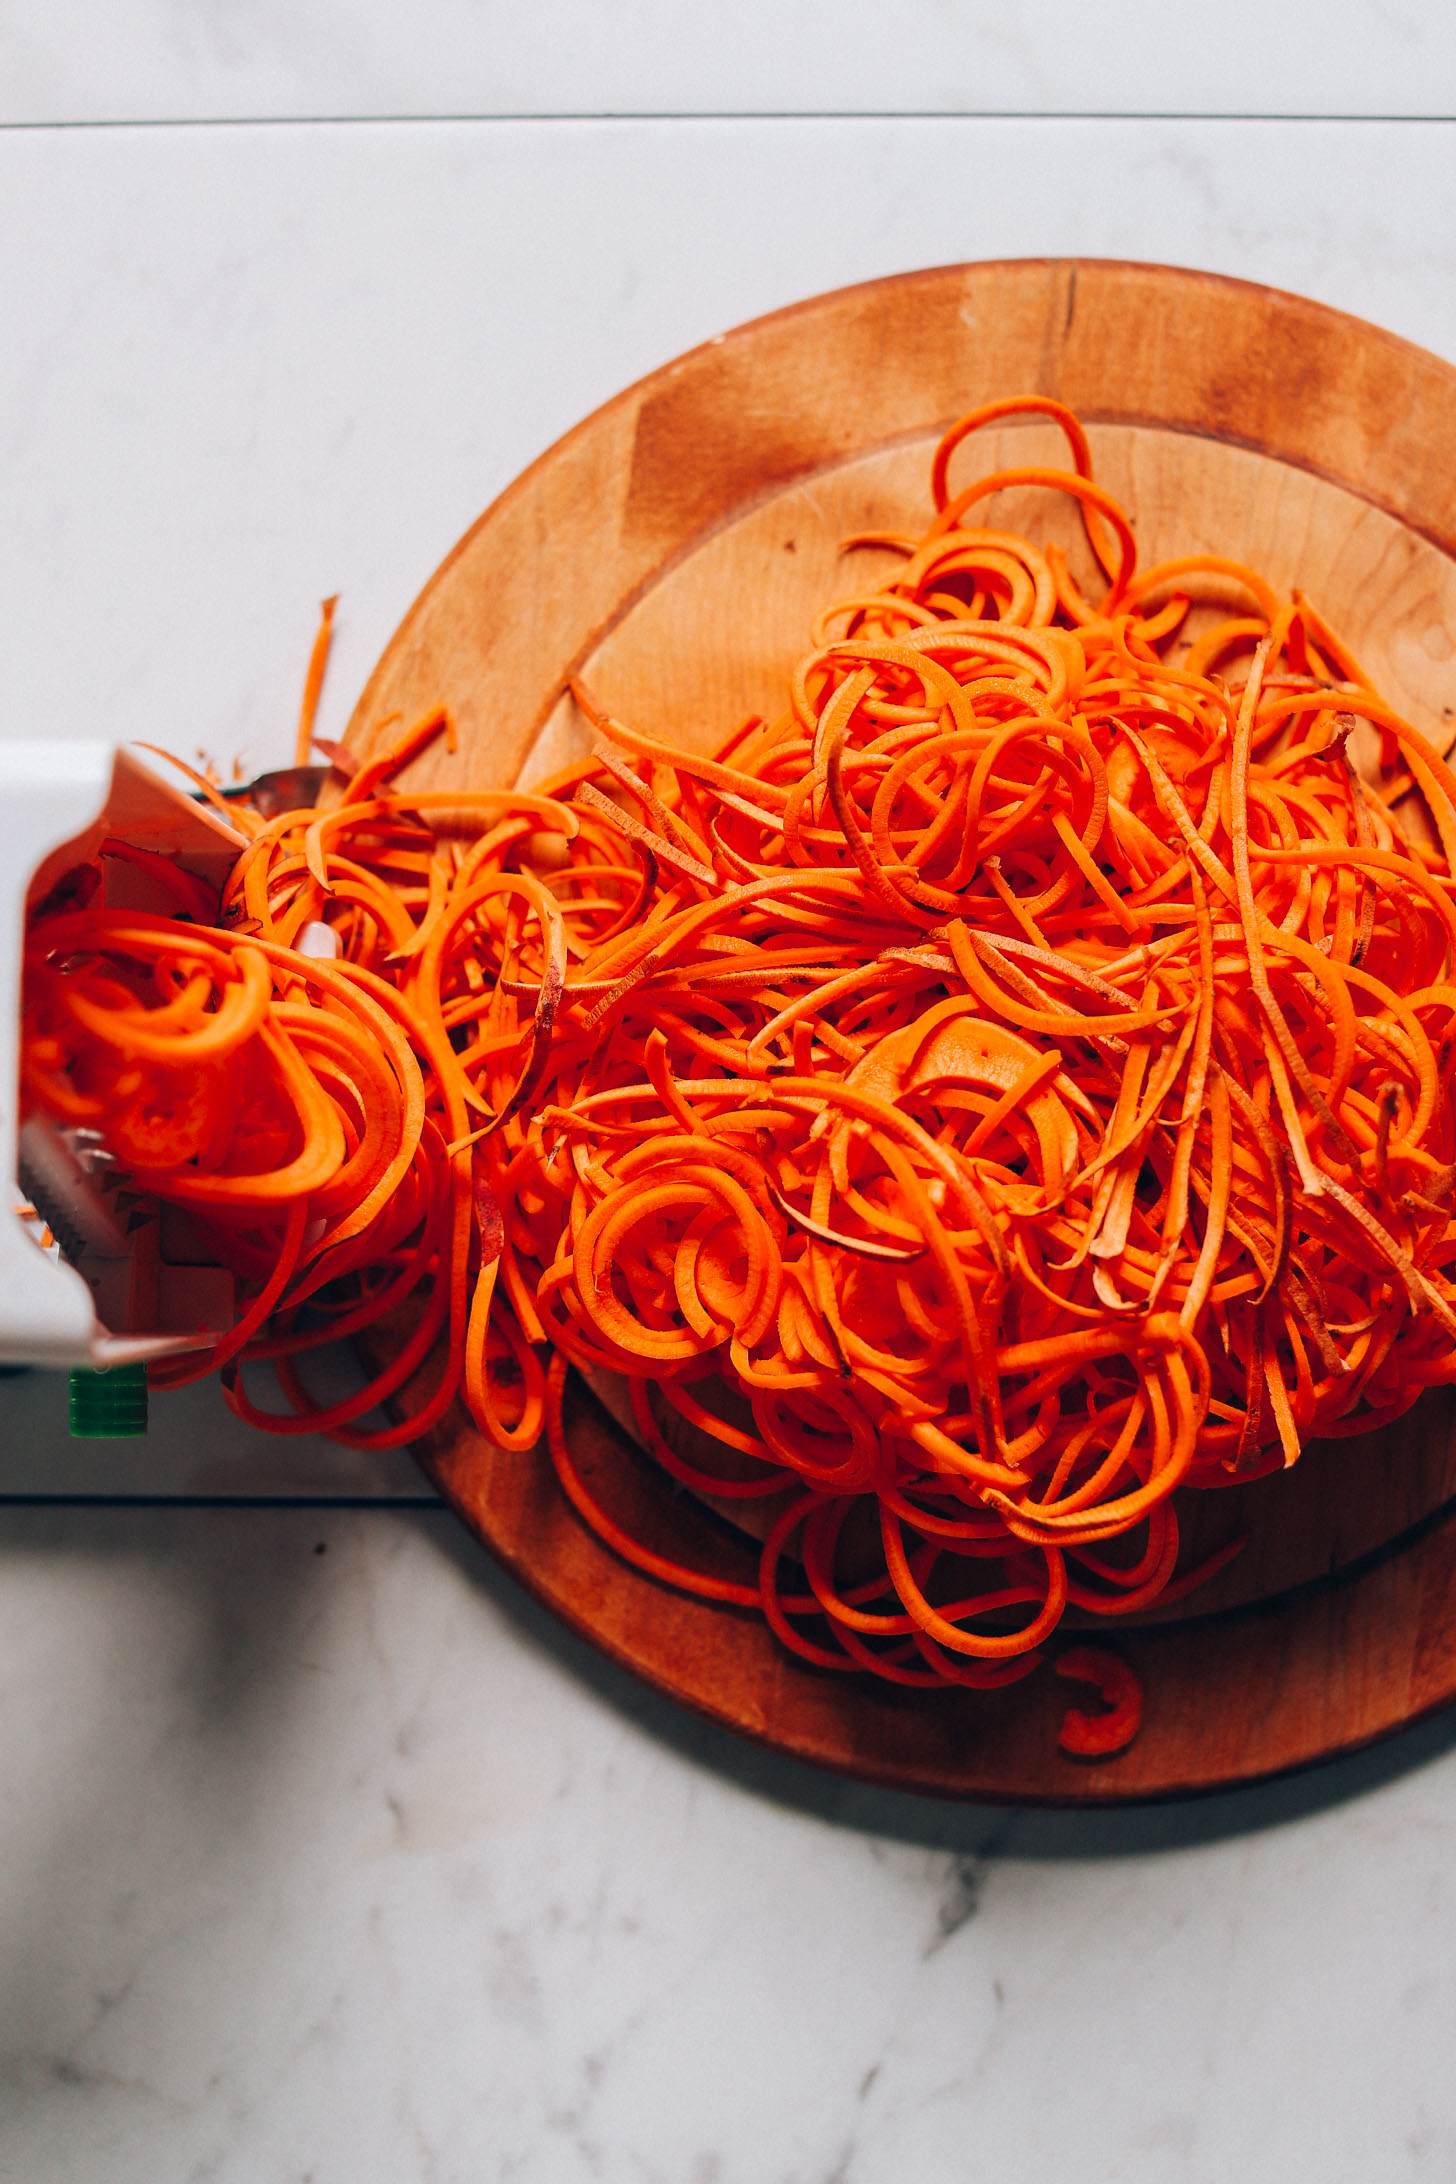 Cutting board with spiralized sweet potatoes for making Sweet Potato Hashbrowns